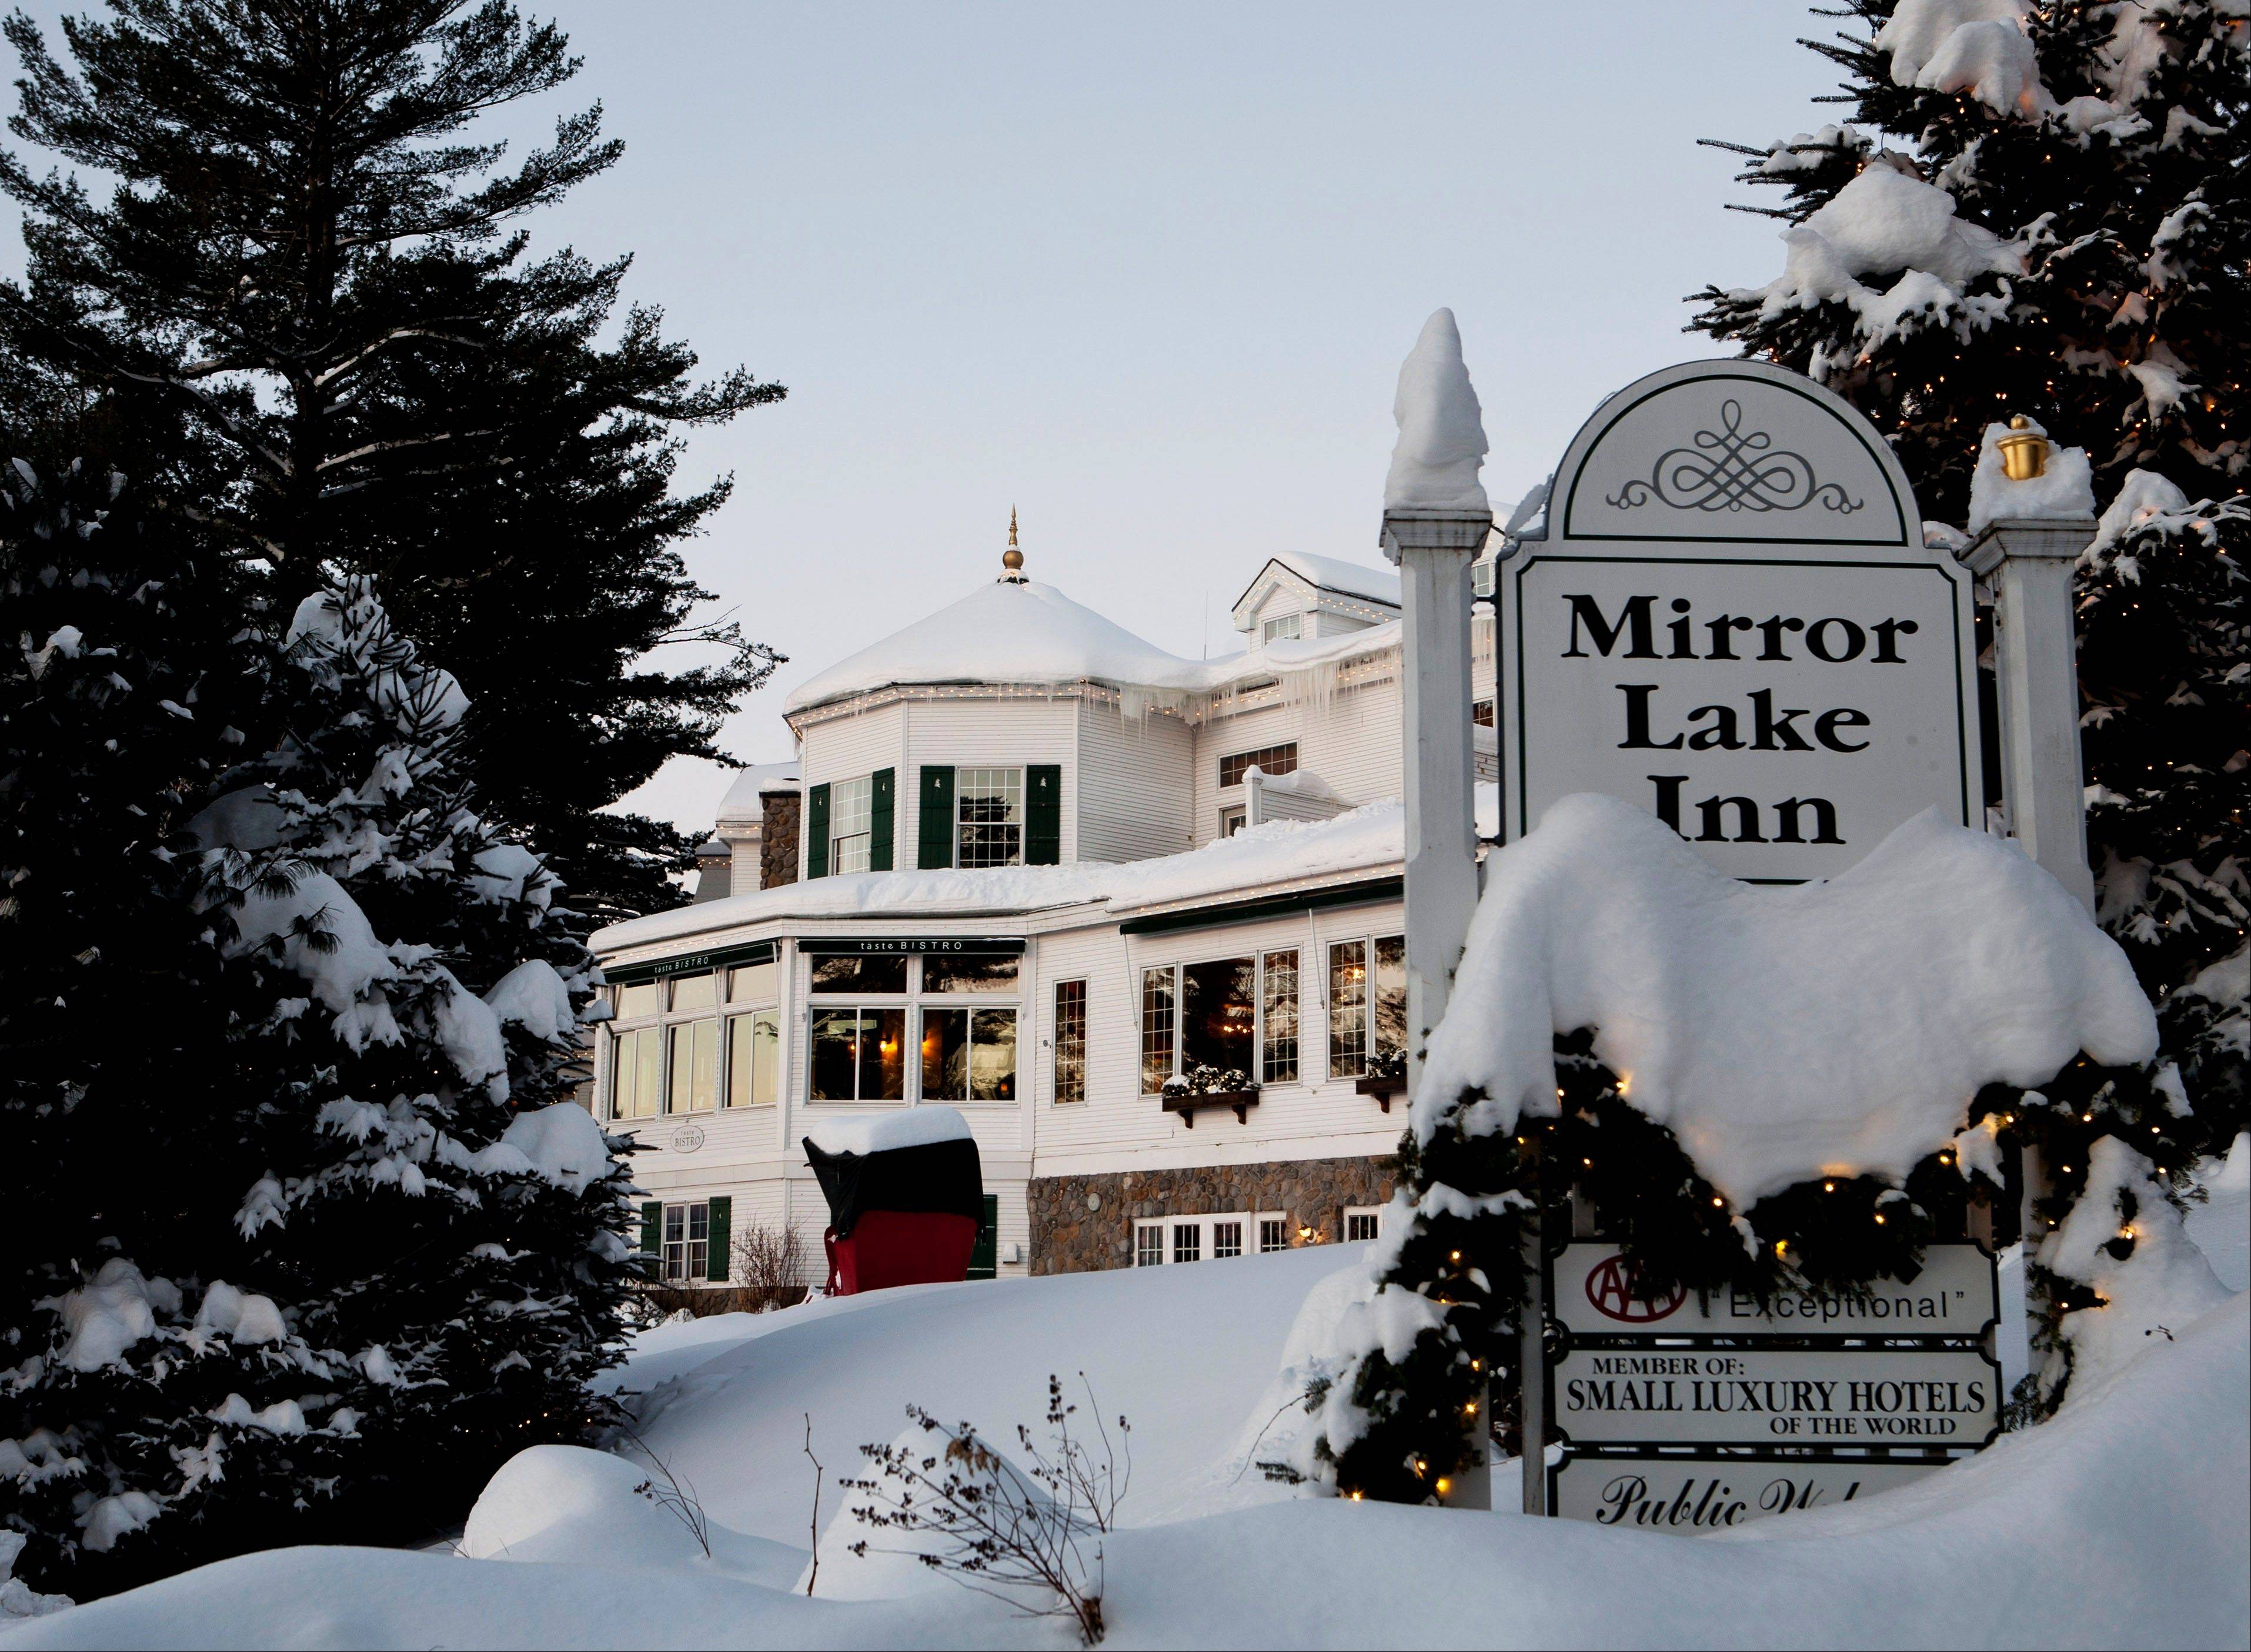 Mirror Lake Inn was founded in the 1920s as Mir-a-Lac and was renamed Mirror Lake Inn in 1933.